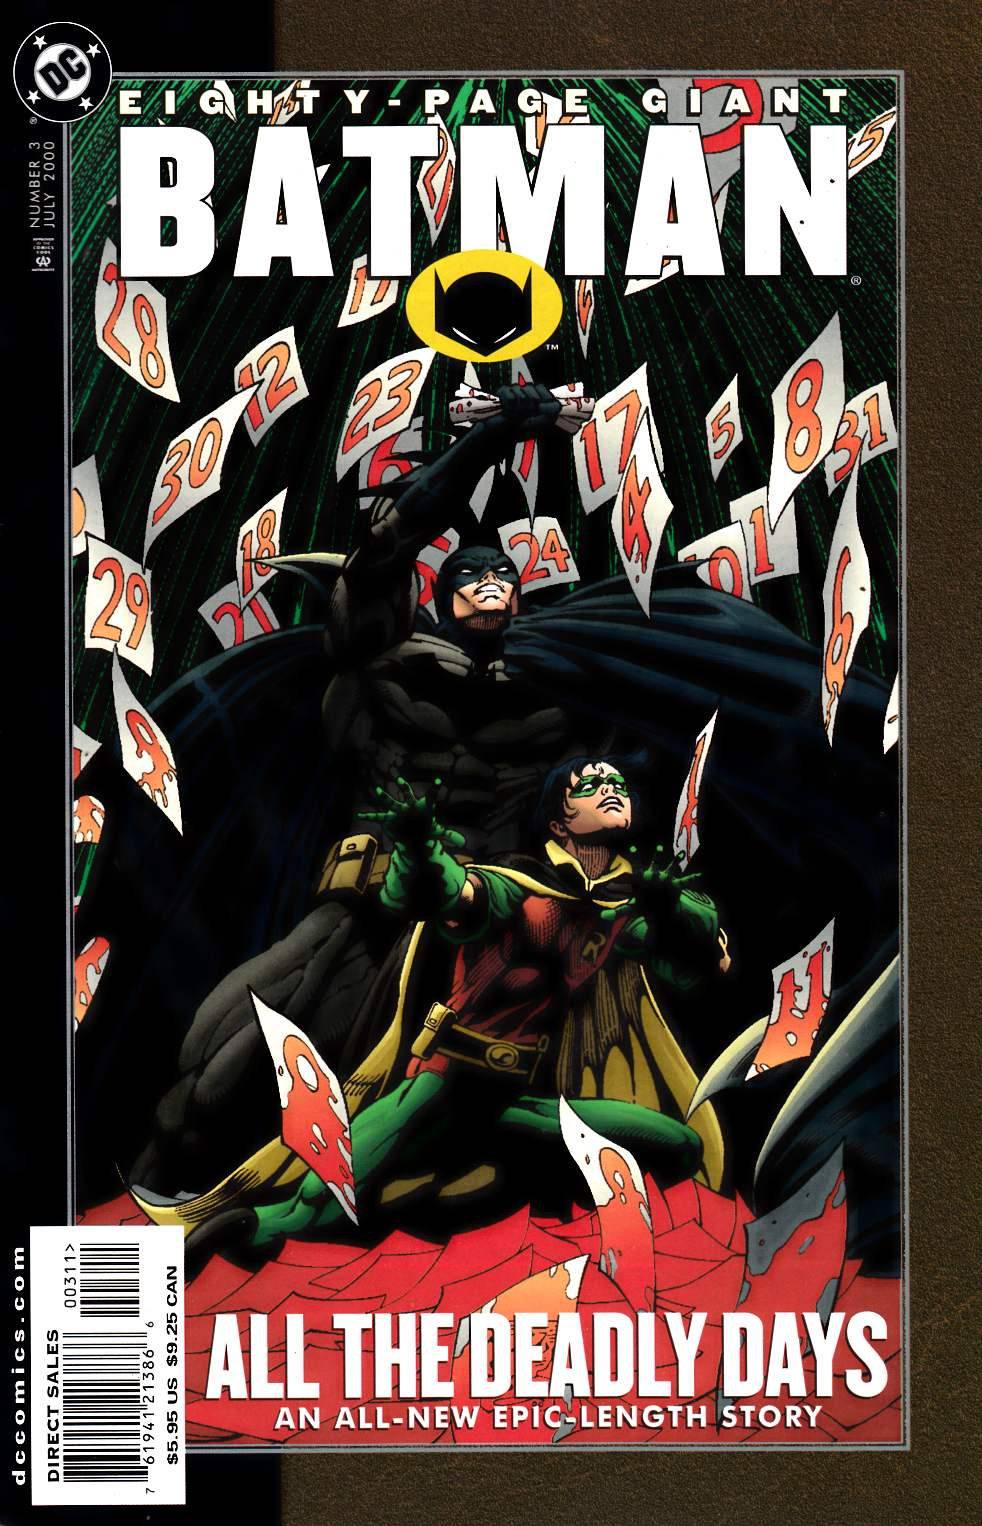 Batman 80 Page Giant #3 Fine (6.0) [DC Comic] THUMBNAIL